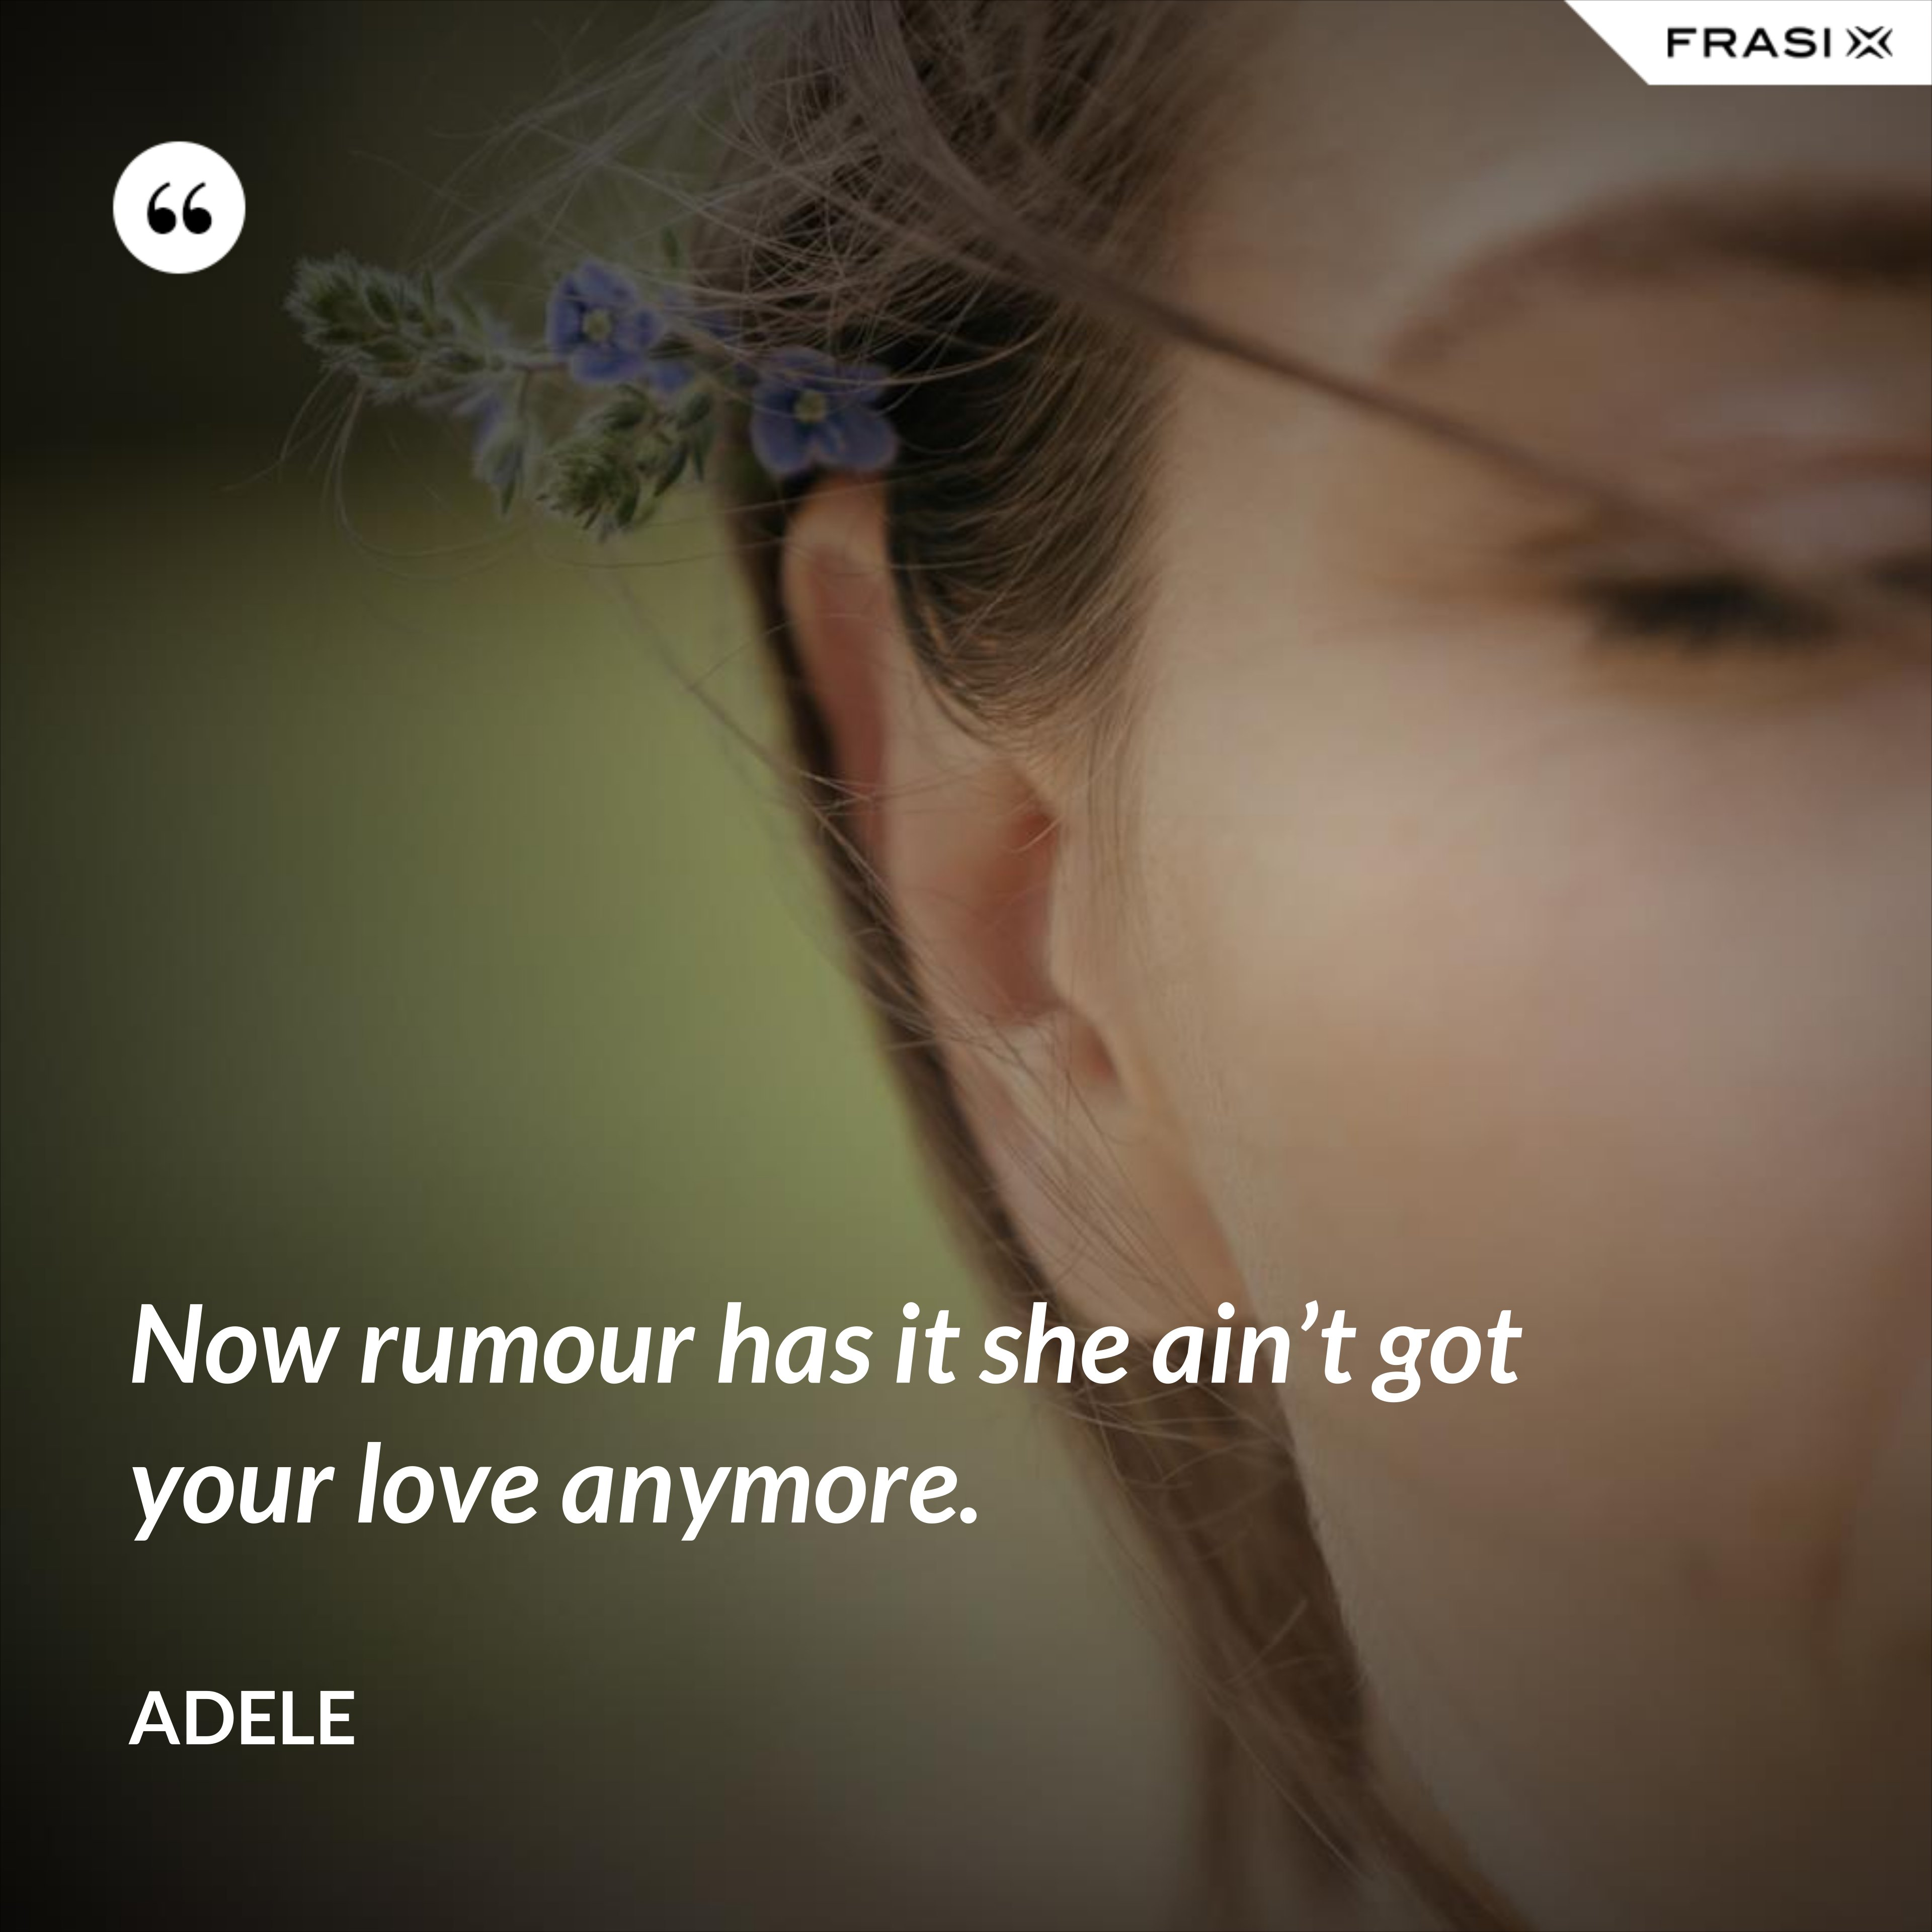 Now rumour has it she ain't got your love anymore. - Adele